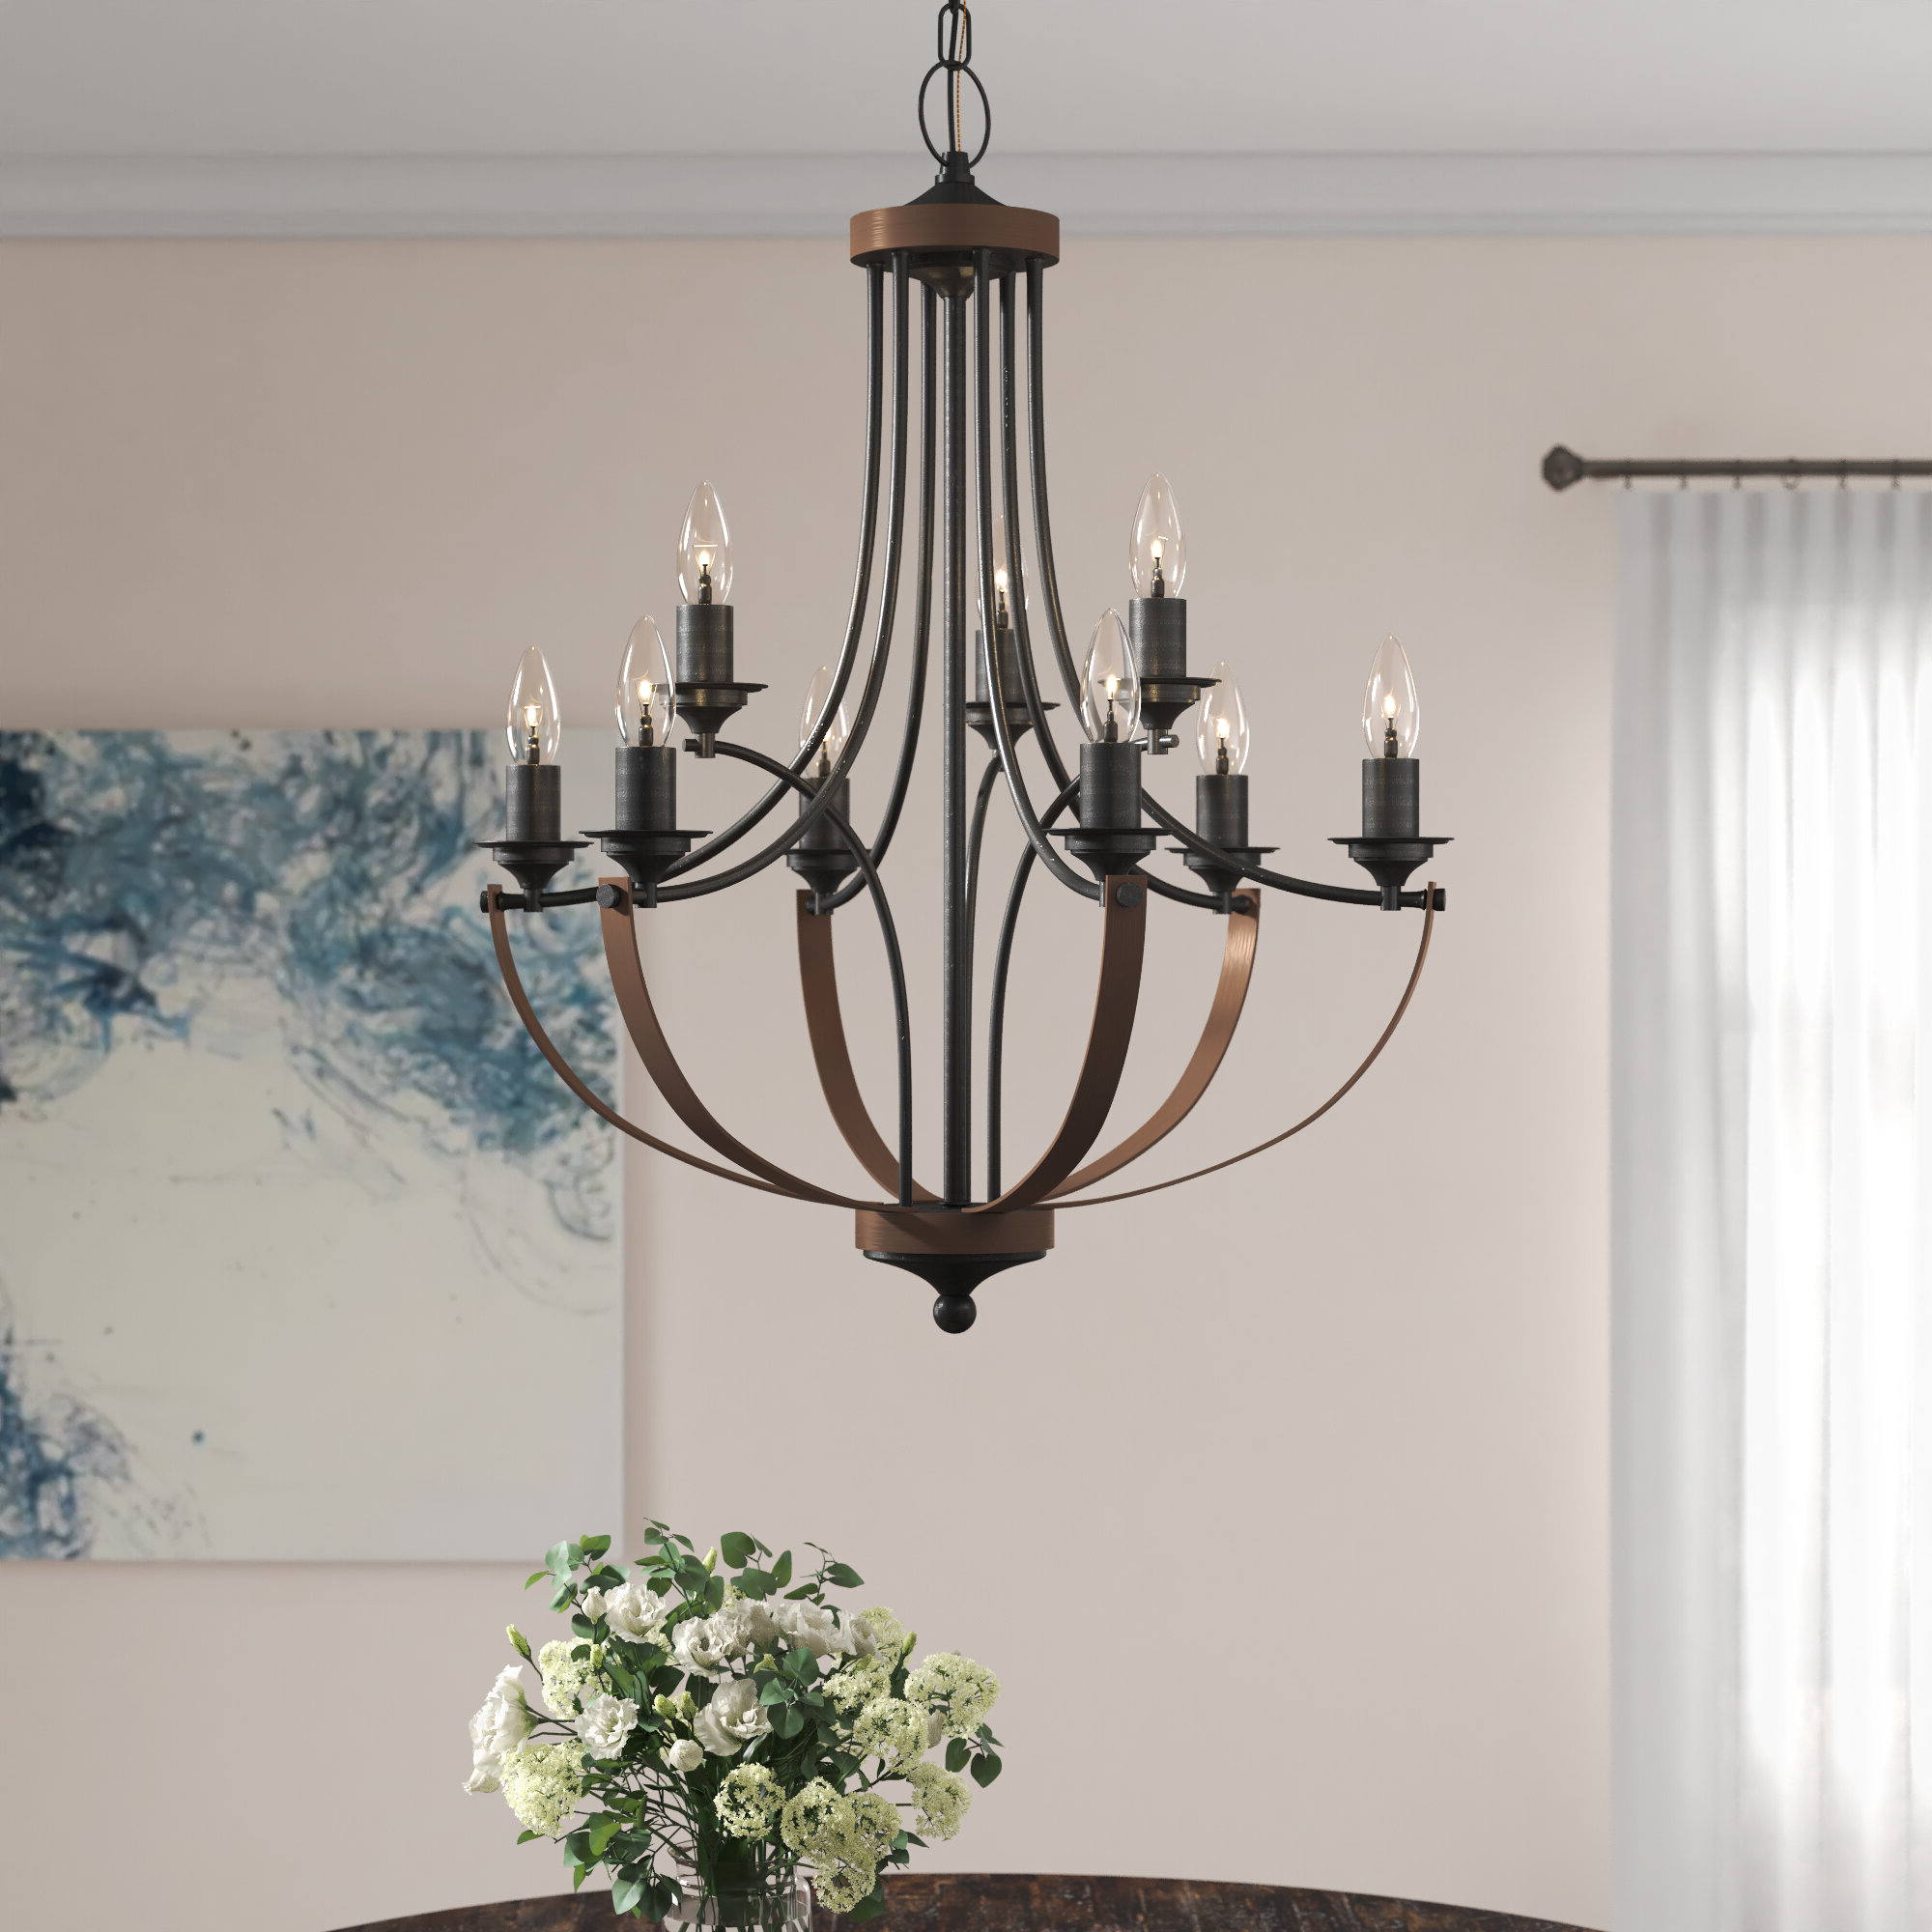 Giverny 9 Light Candle Style Chandeliers Intended For Most Popular Camilla 9 Light Candle Style Chandelier (View 5 of 20)